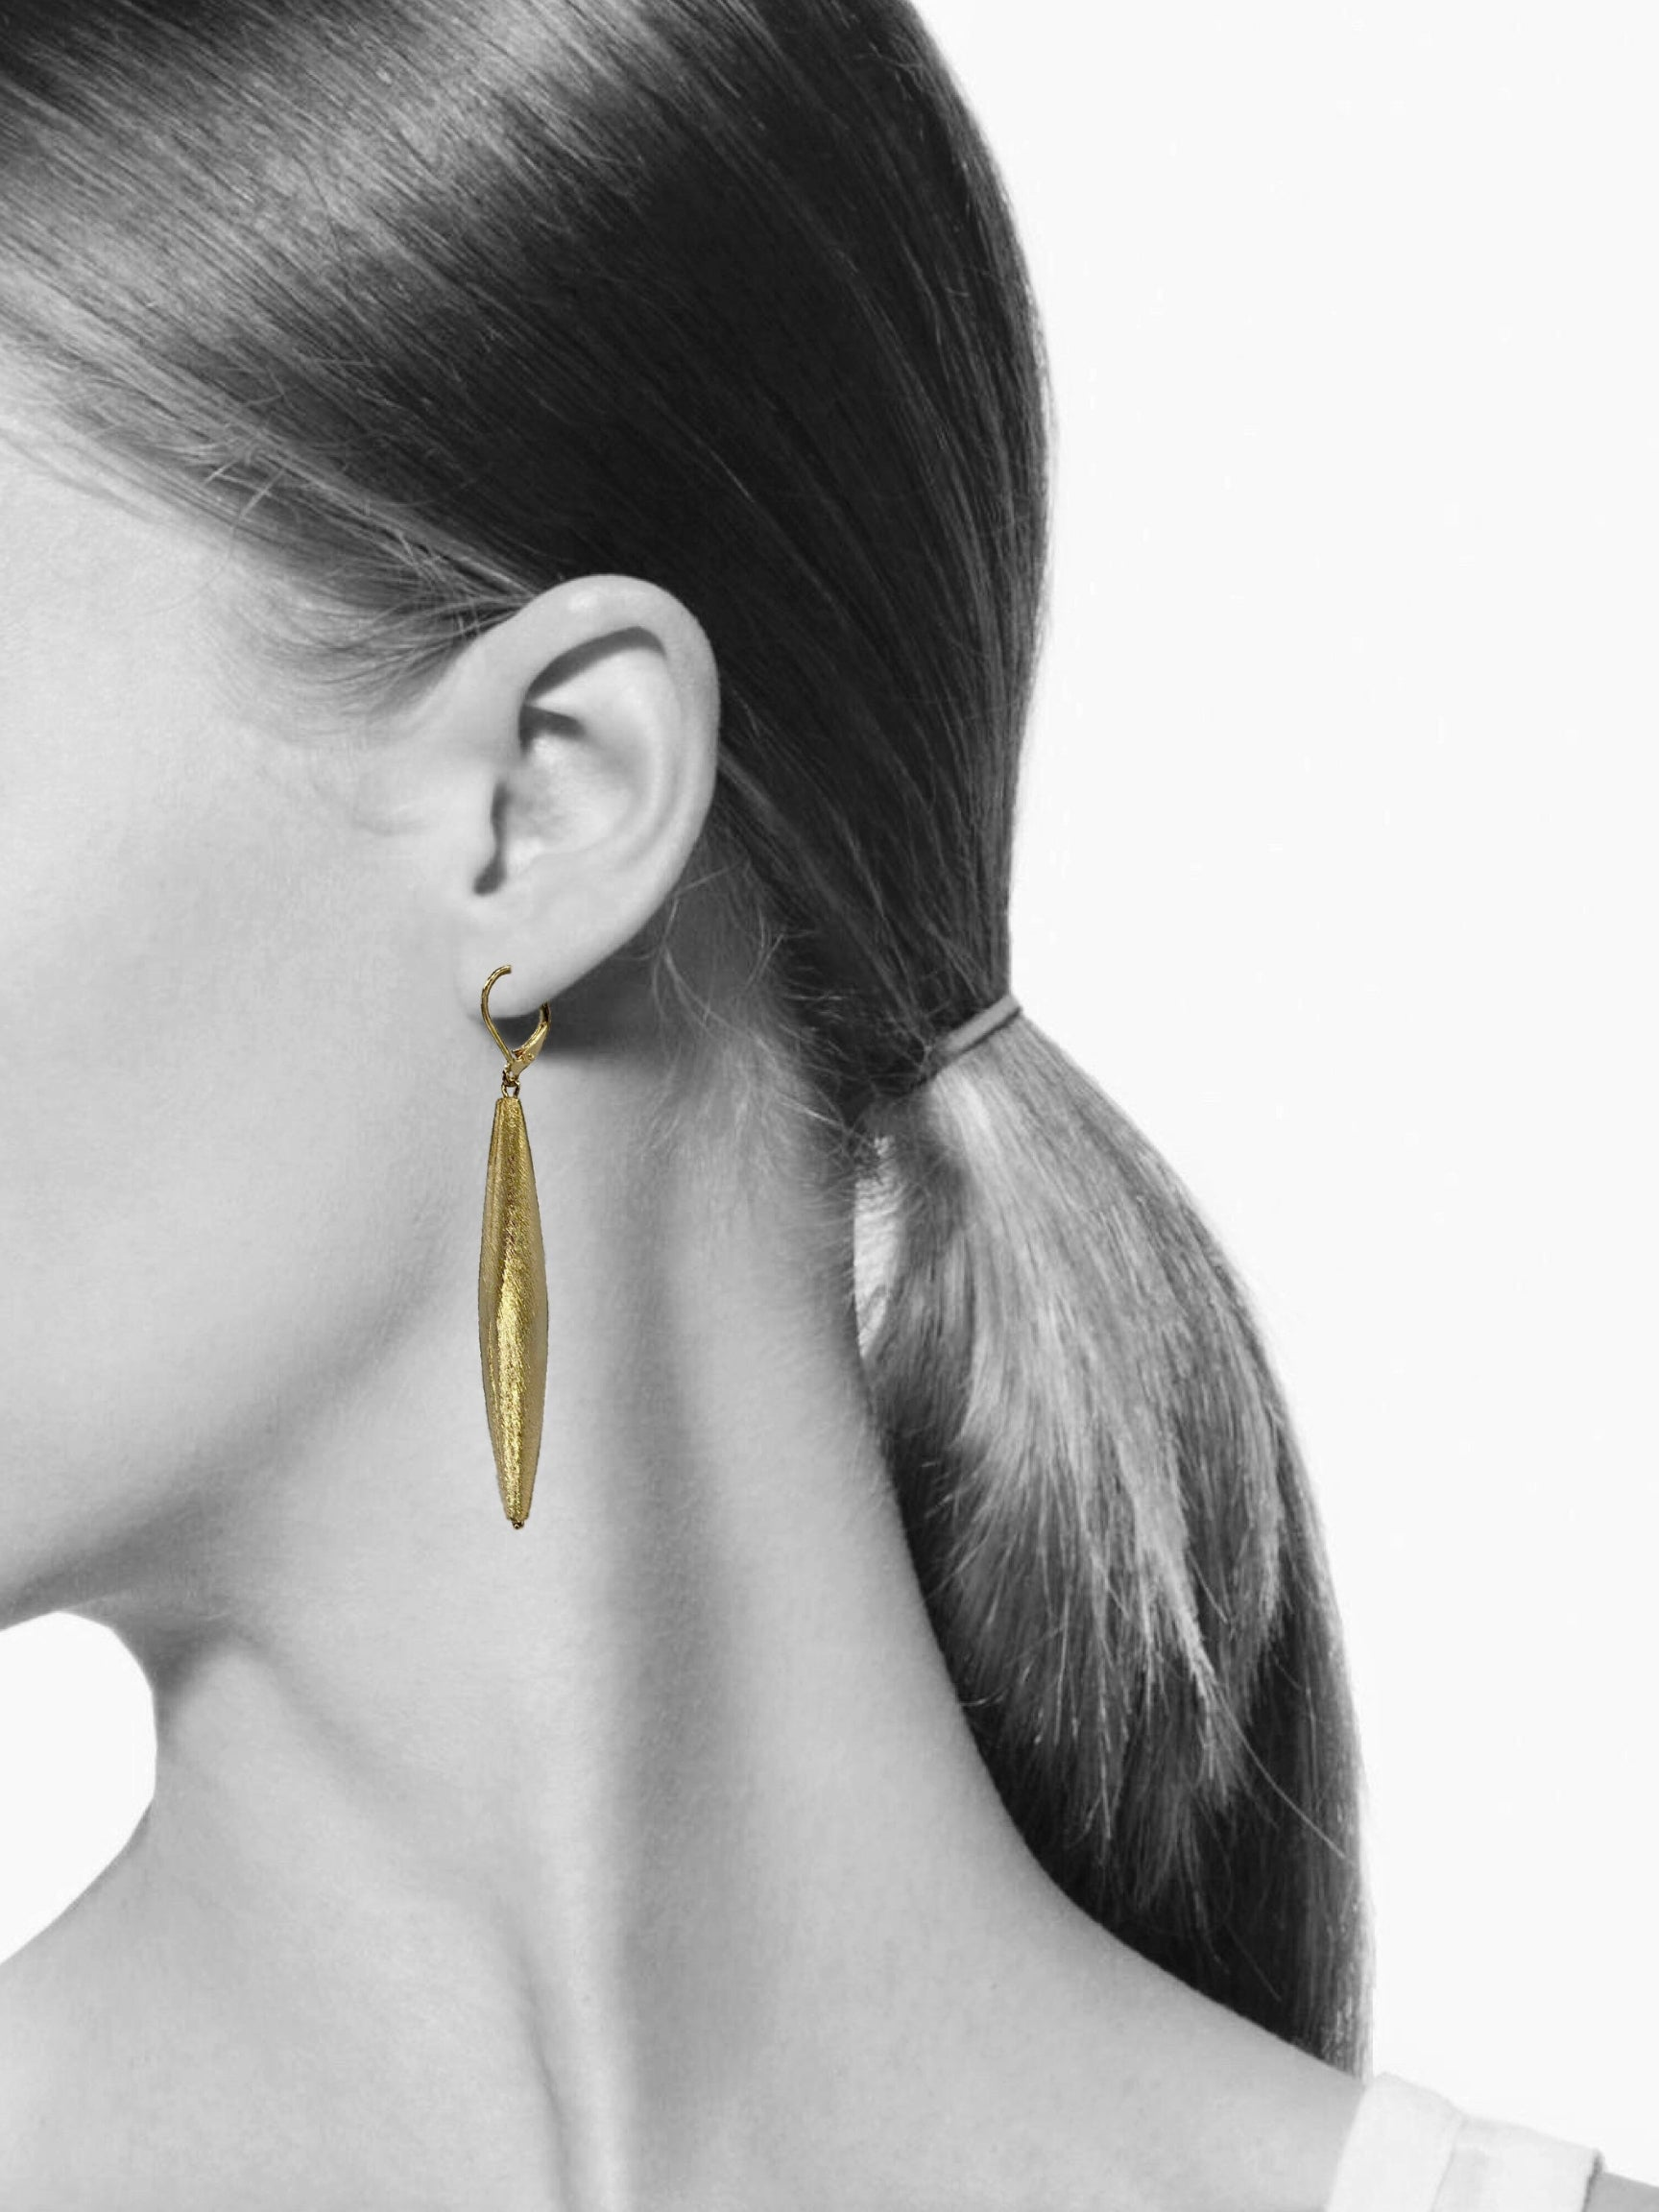 Zeppelin Cora 1 Drop Gold Earrings-Earrings-JAREDJAMIN Jewelry Online-JARED JAMIN